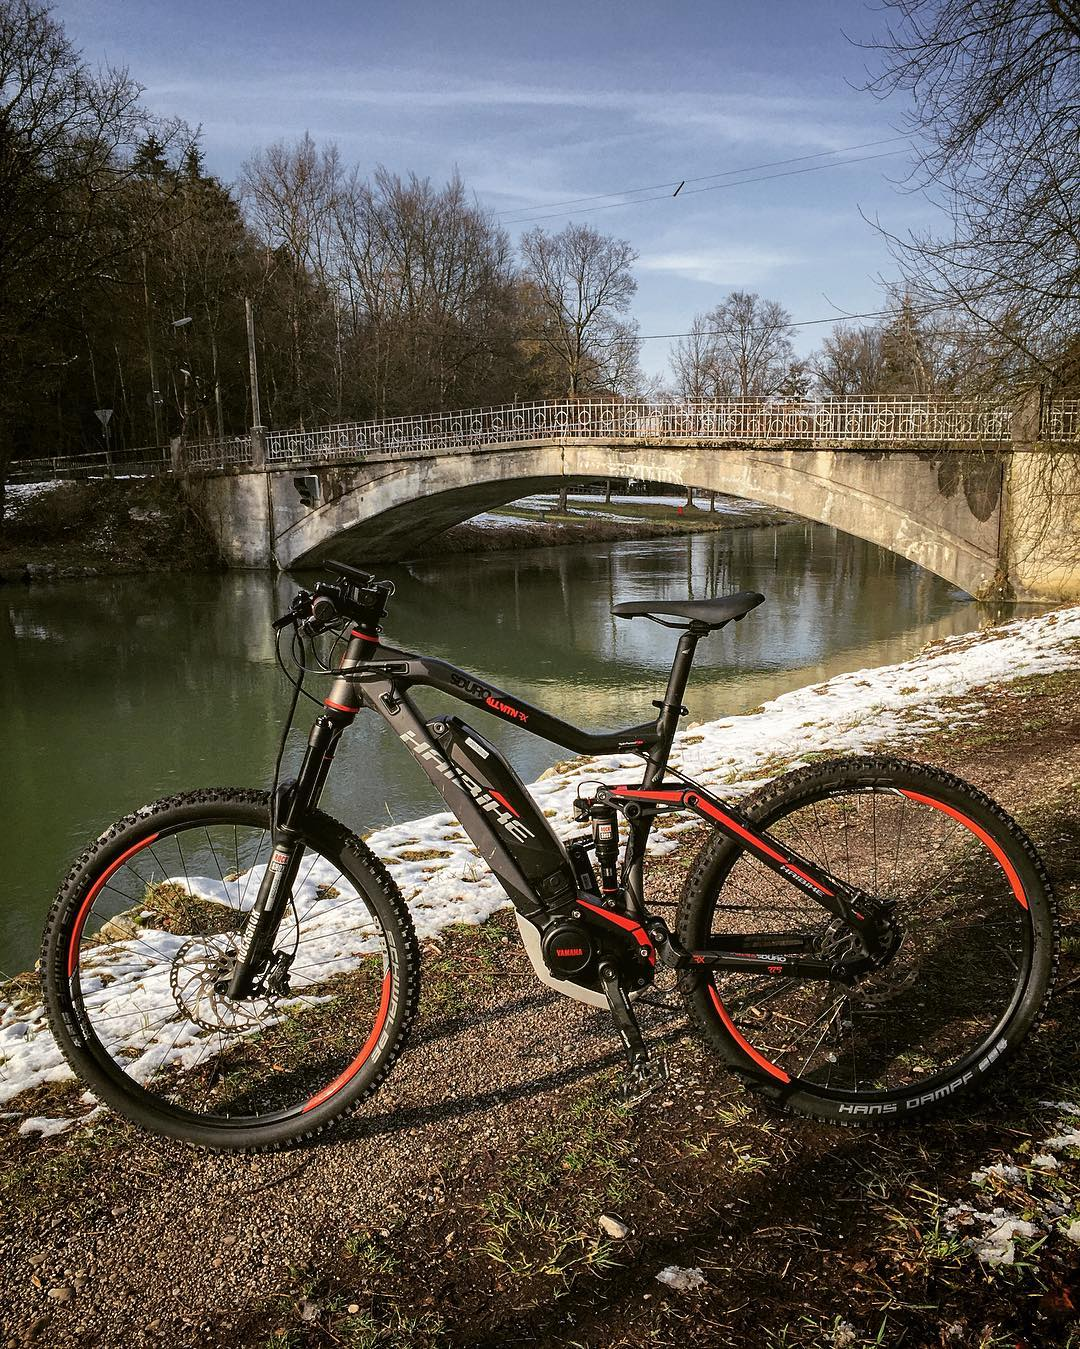 It's Friday, time to ride! #sduro #yamaha #mtb #eperformance #munich